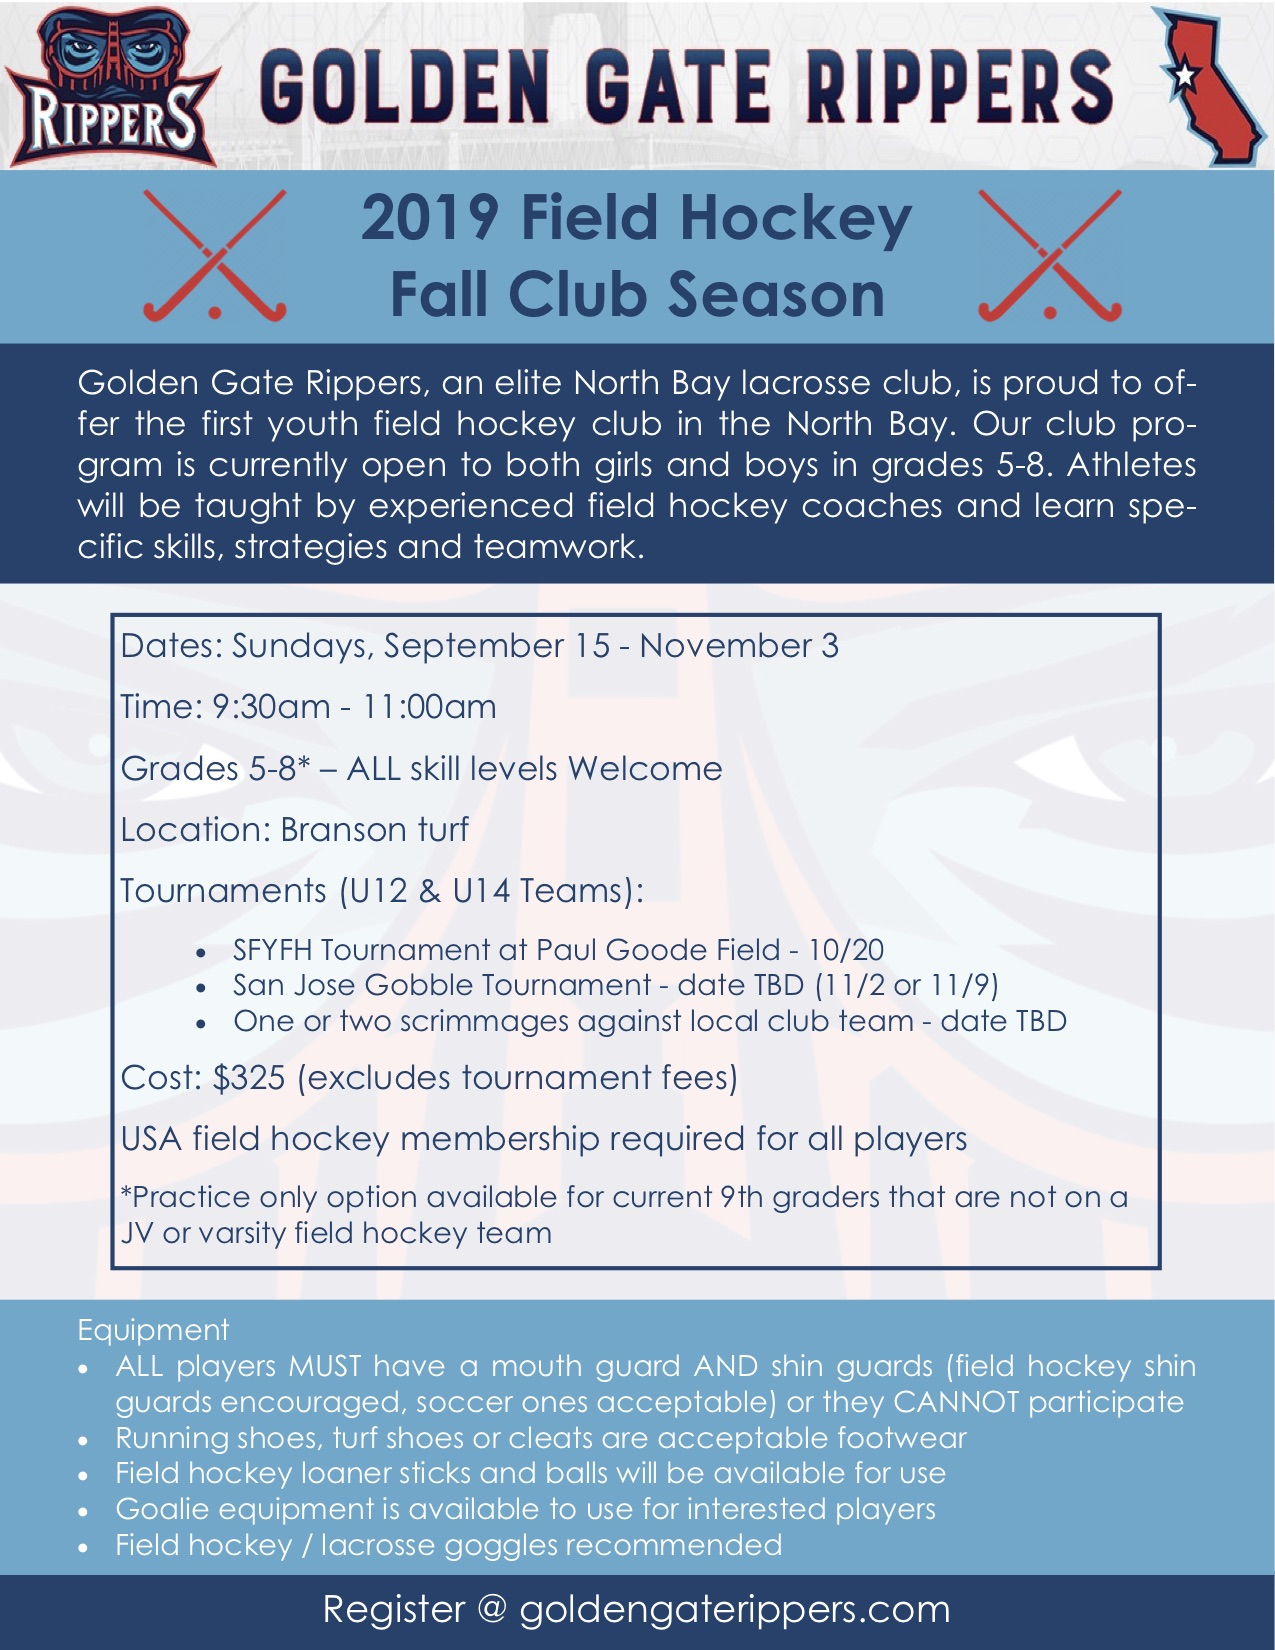 2019 Rippers FH Fall Flyer_no tear pieces.jpg